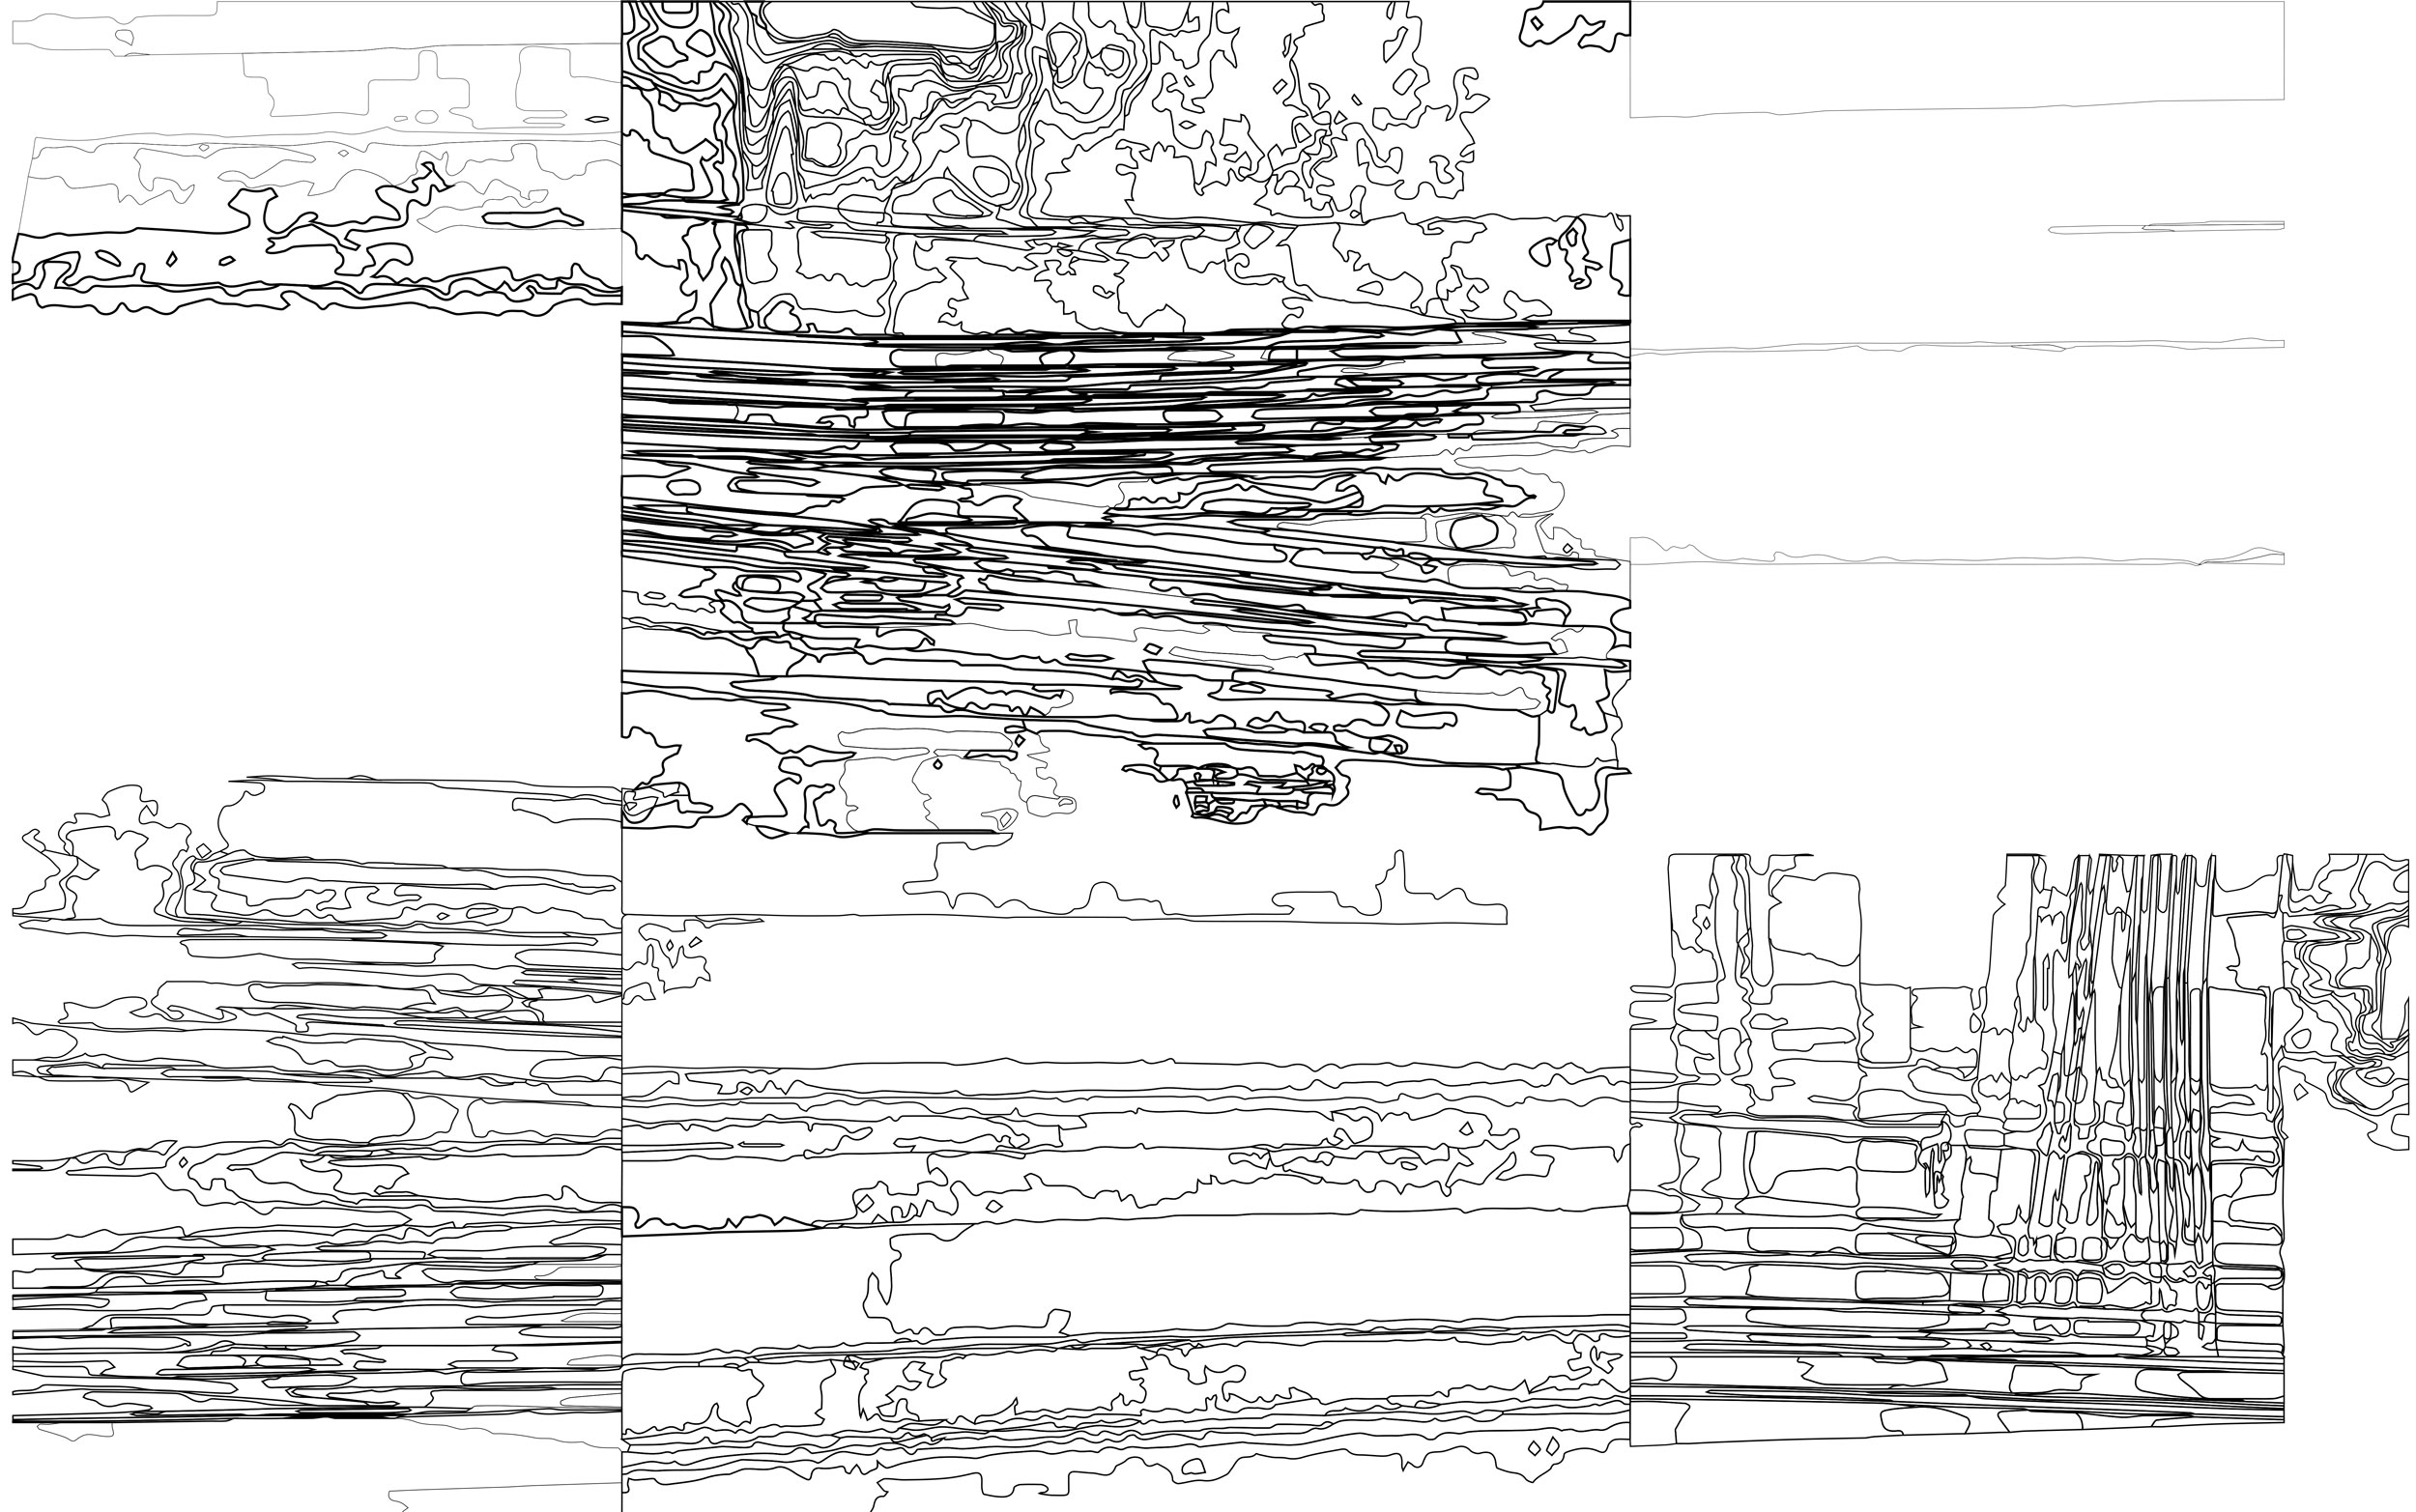 Drawing based on storyboard.